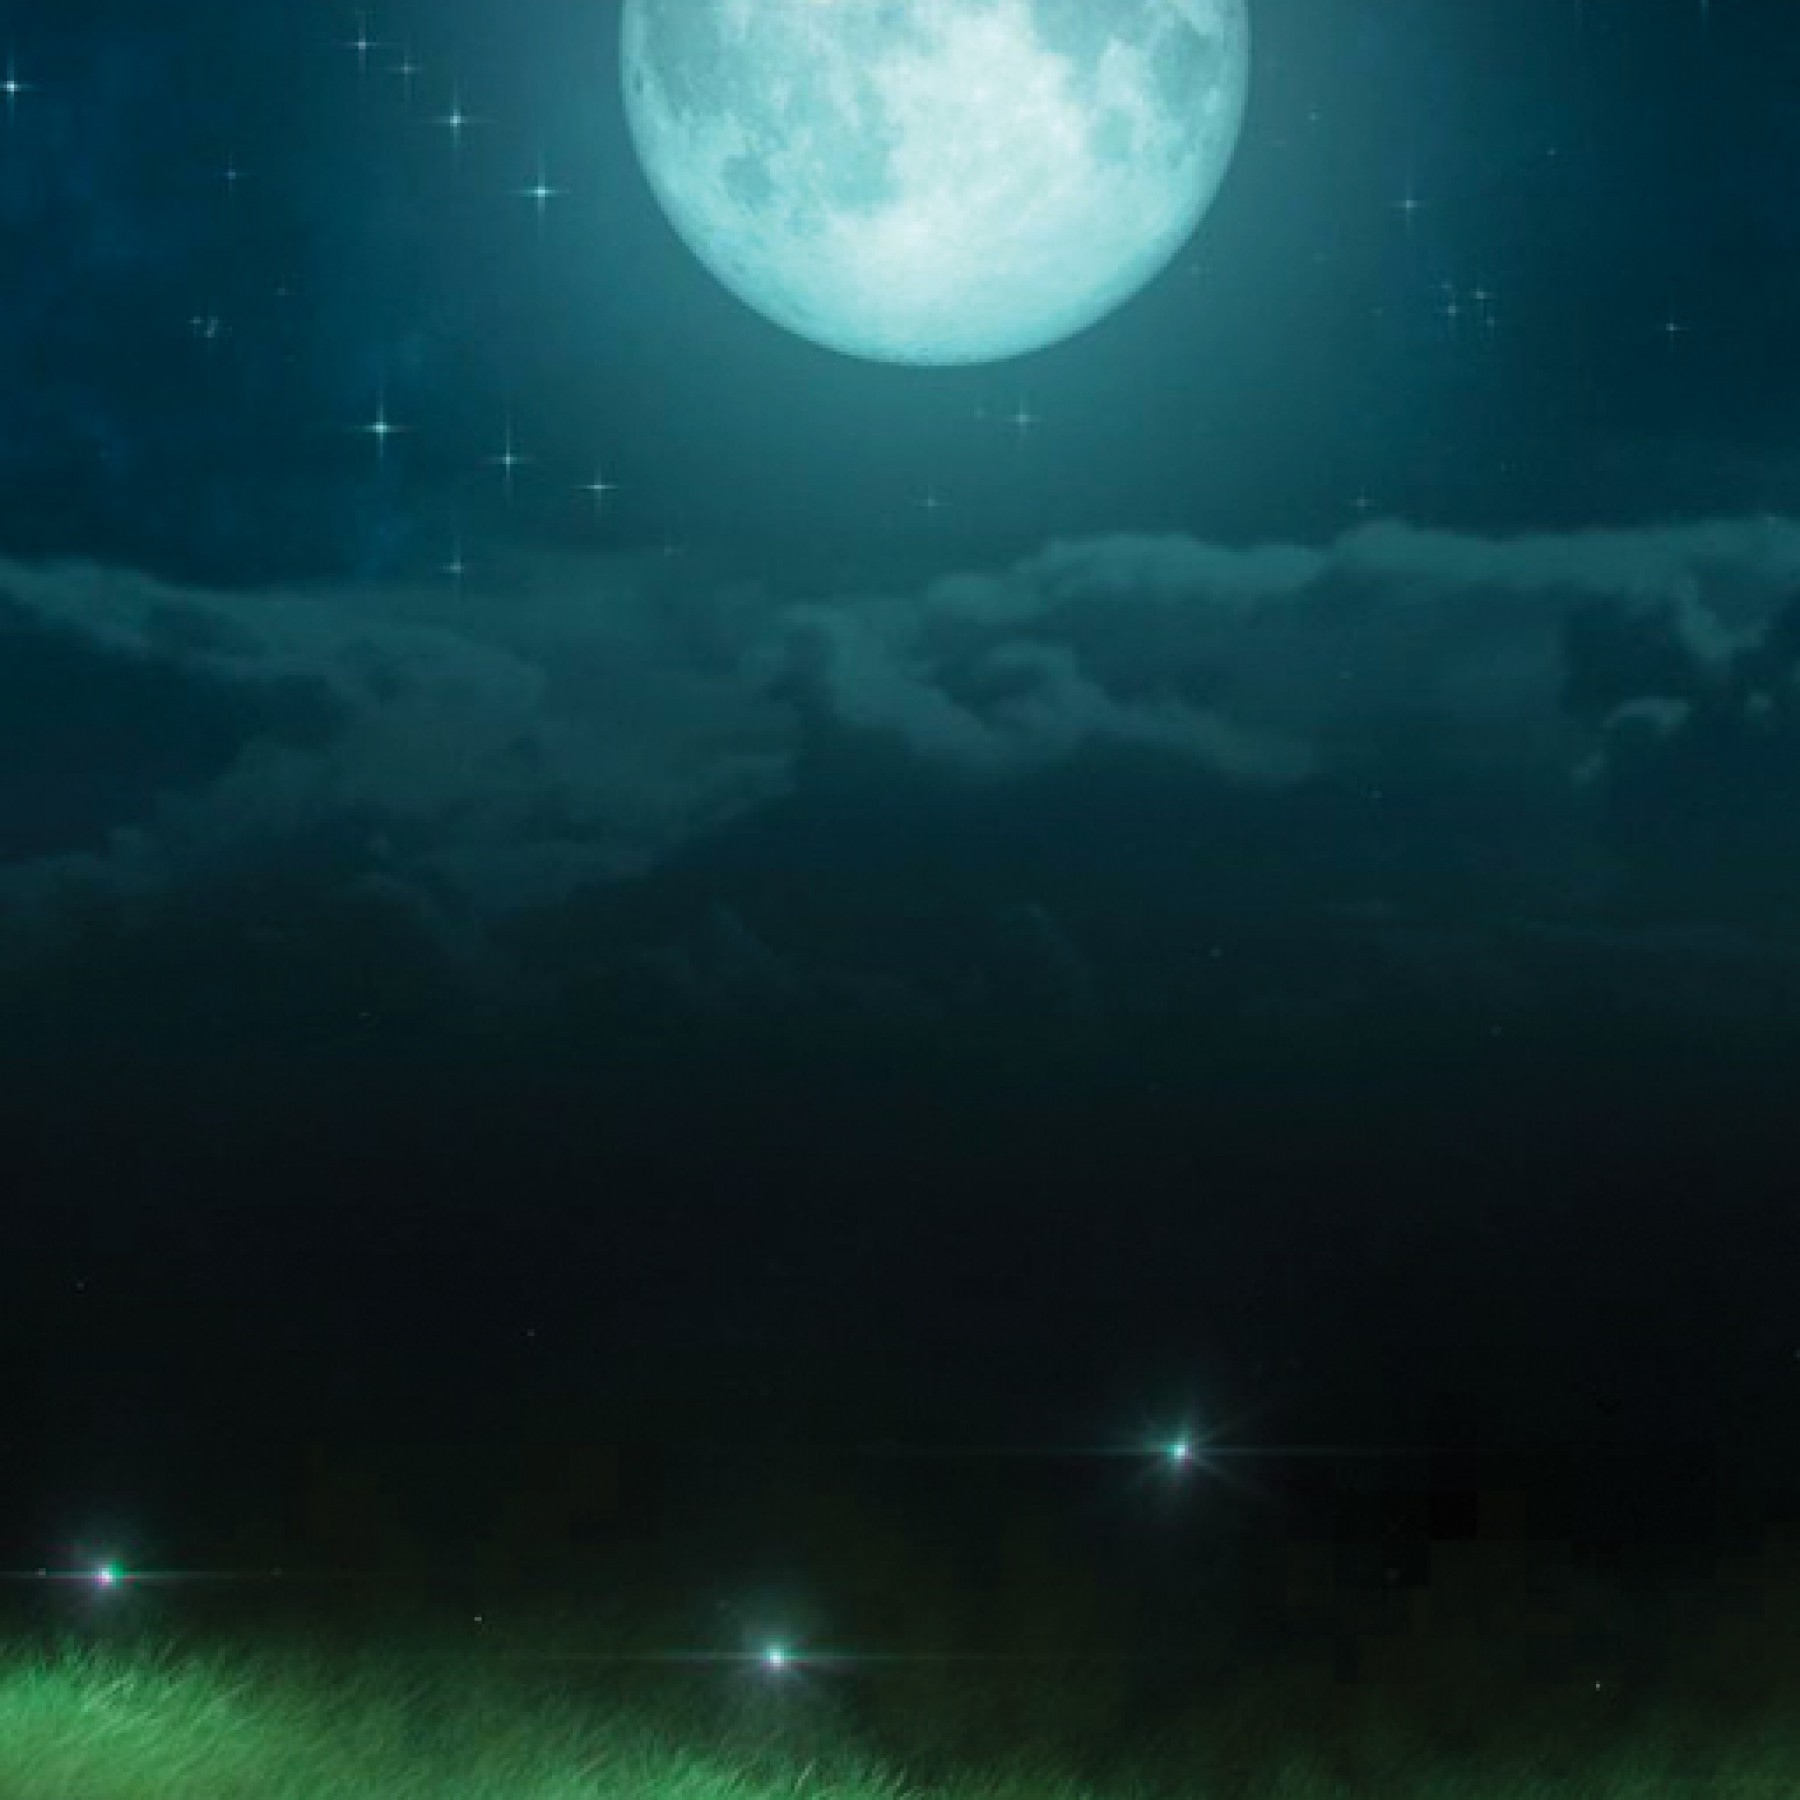 fireflies-kids-adults-relaxation-mysterious-main-location1